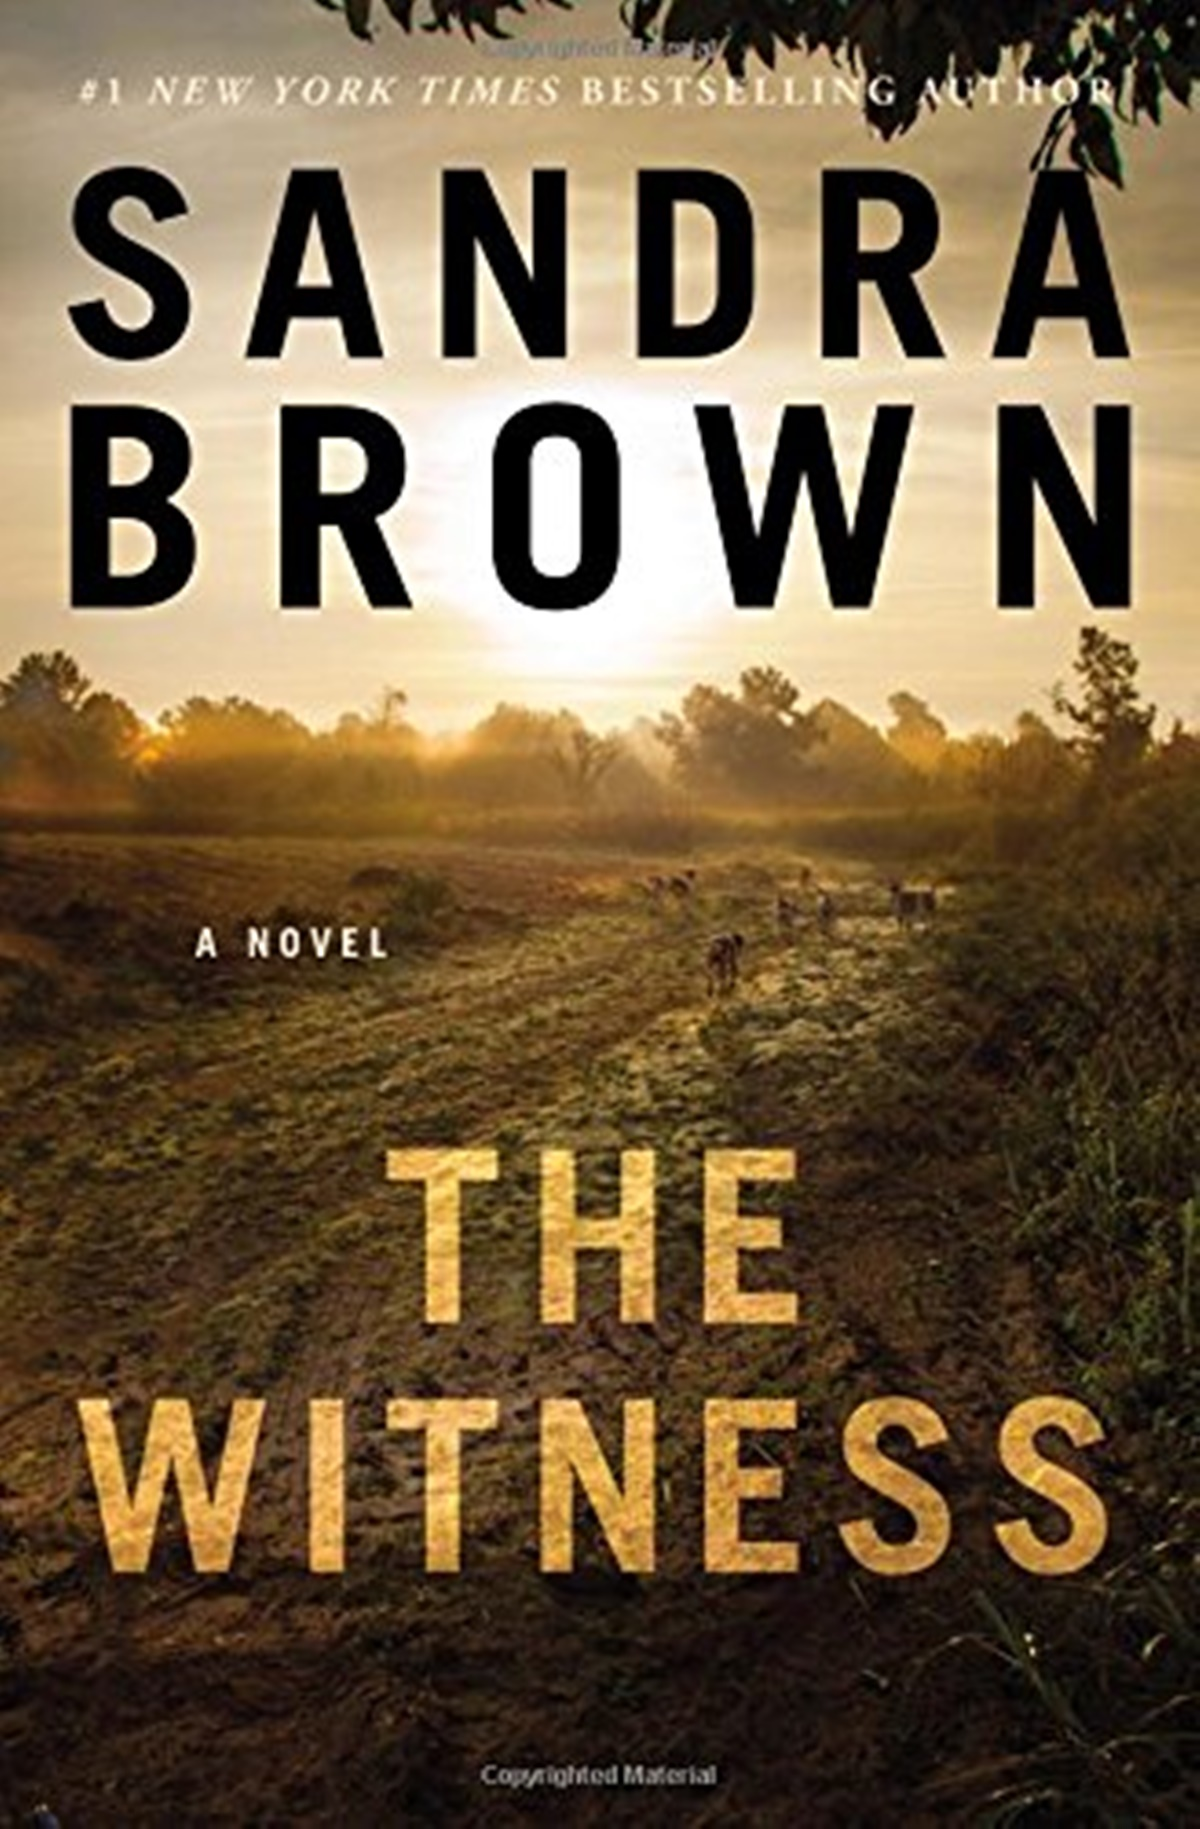 Sandra Brown Books, the cover of The Witness by Sandra Brown, books